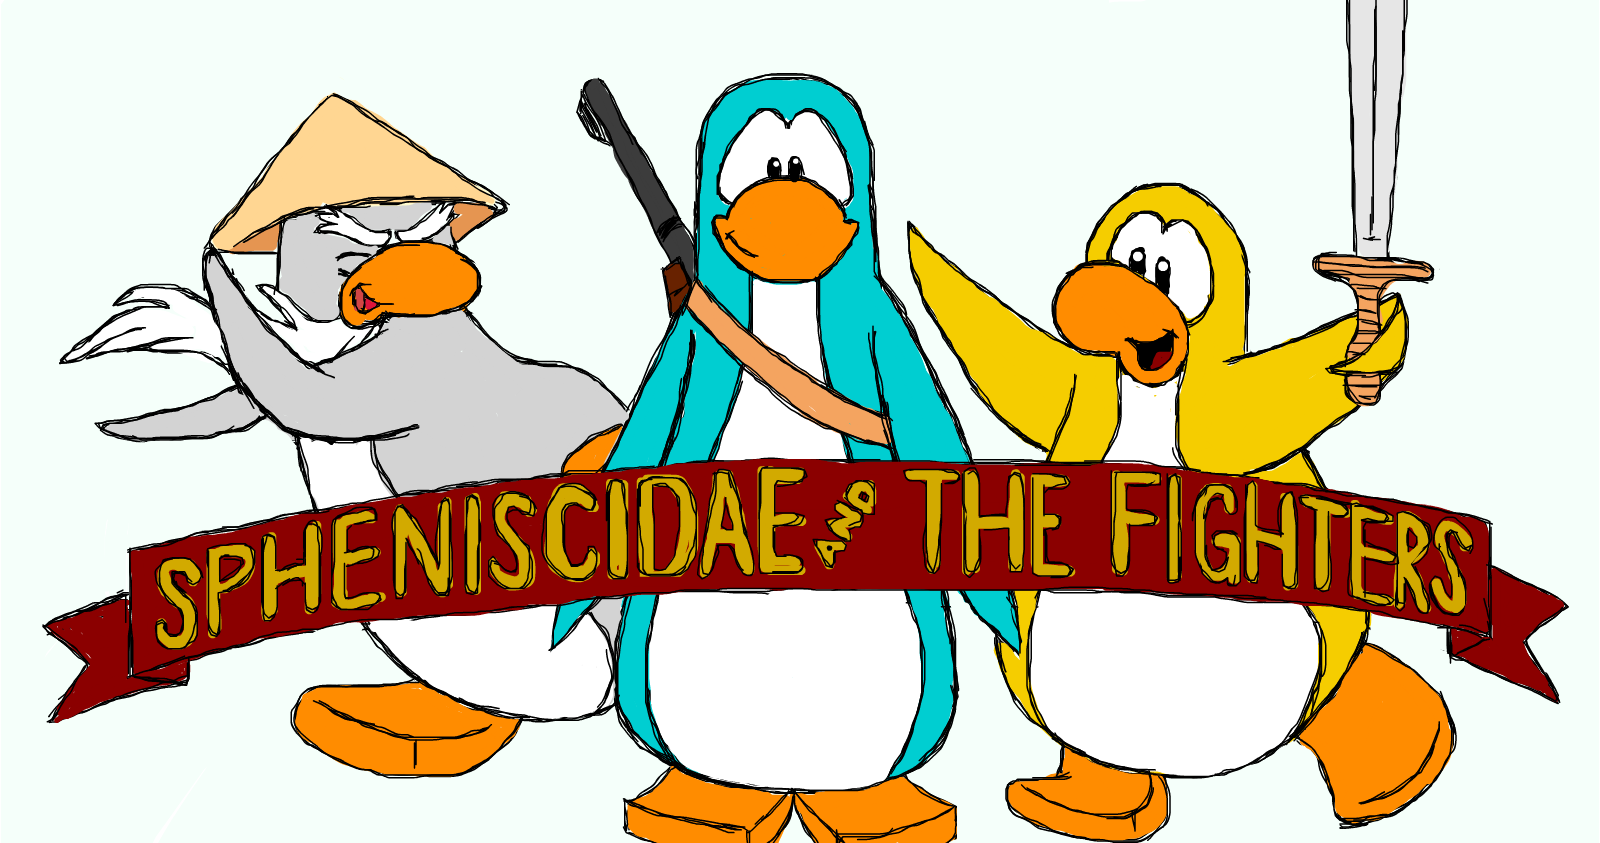 Spheniscidae and The Fighters